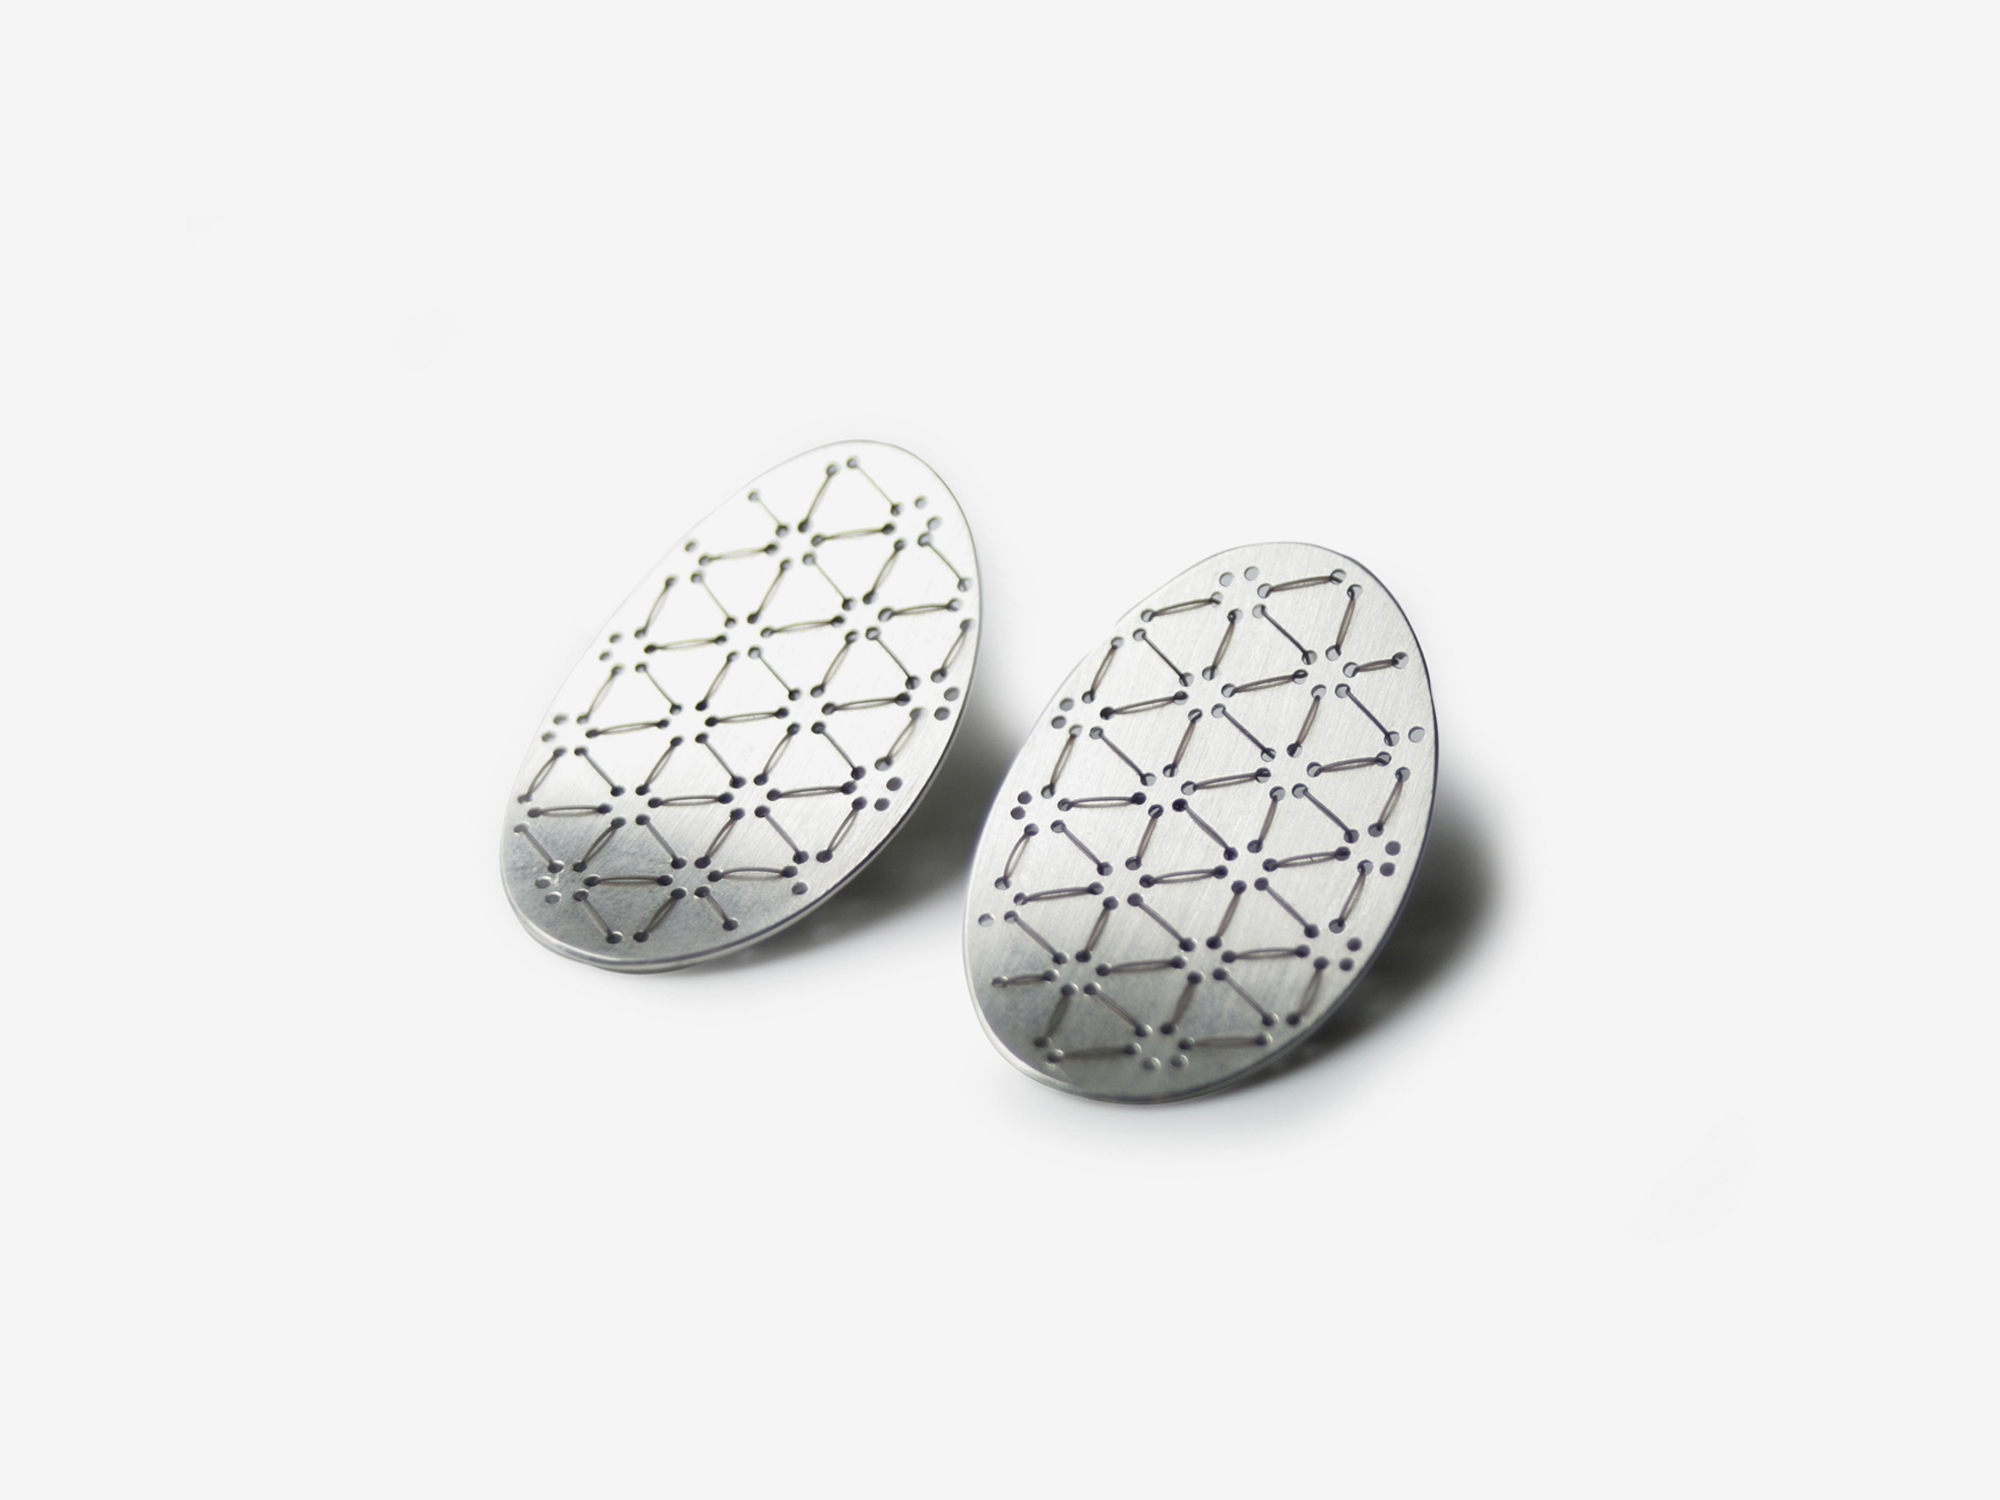 Bestickte Nadelwerk-Ohrstecker Leah in 925 Silber E mbroidered Nadelwerk-earrings Leah in sterling silver